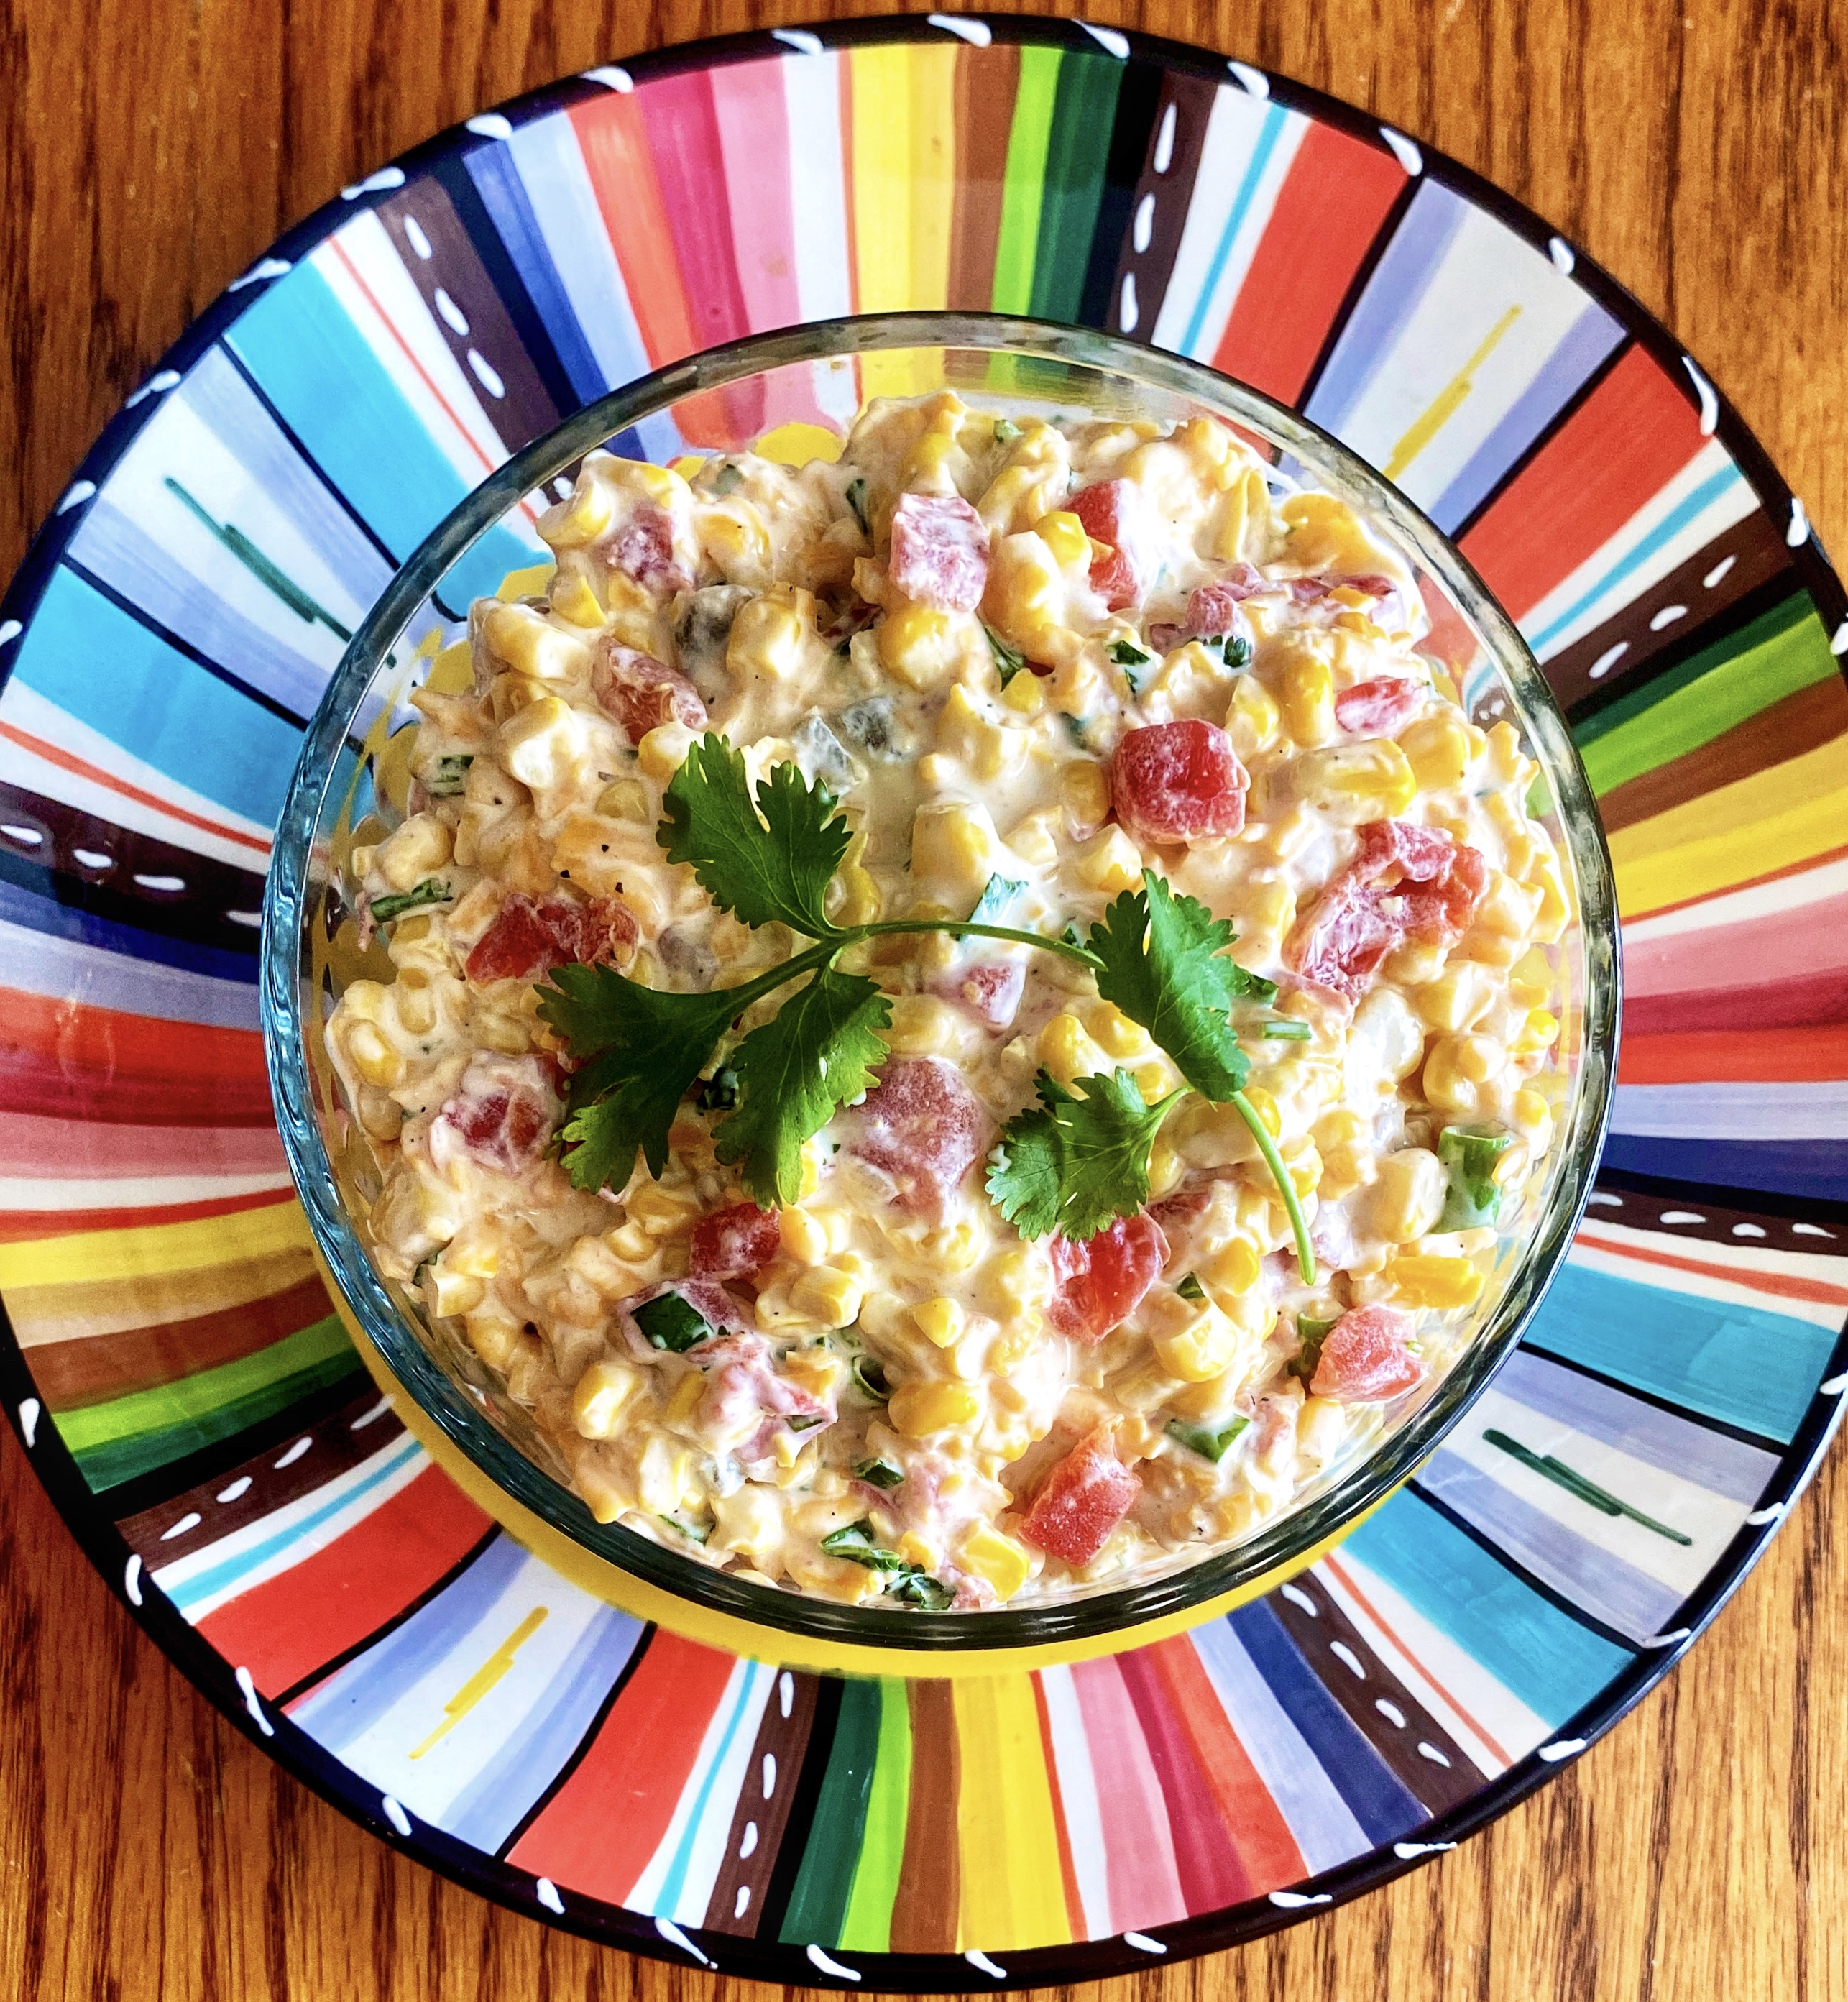 Spicy, Creamy Corn Salsa